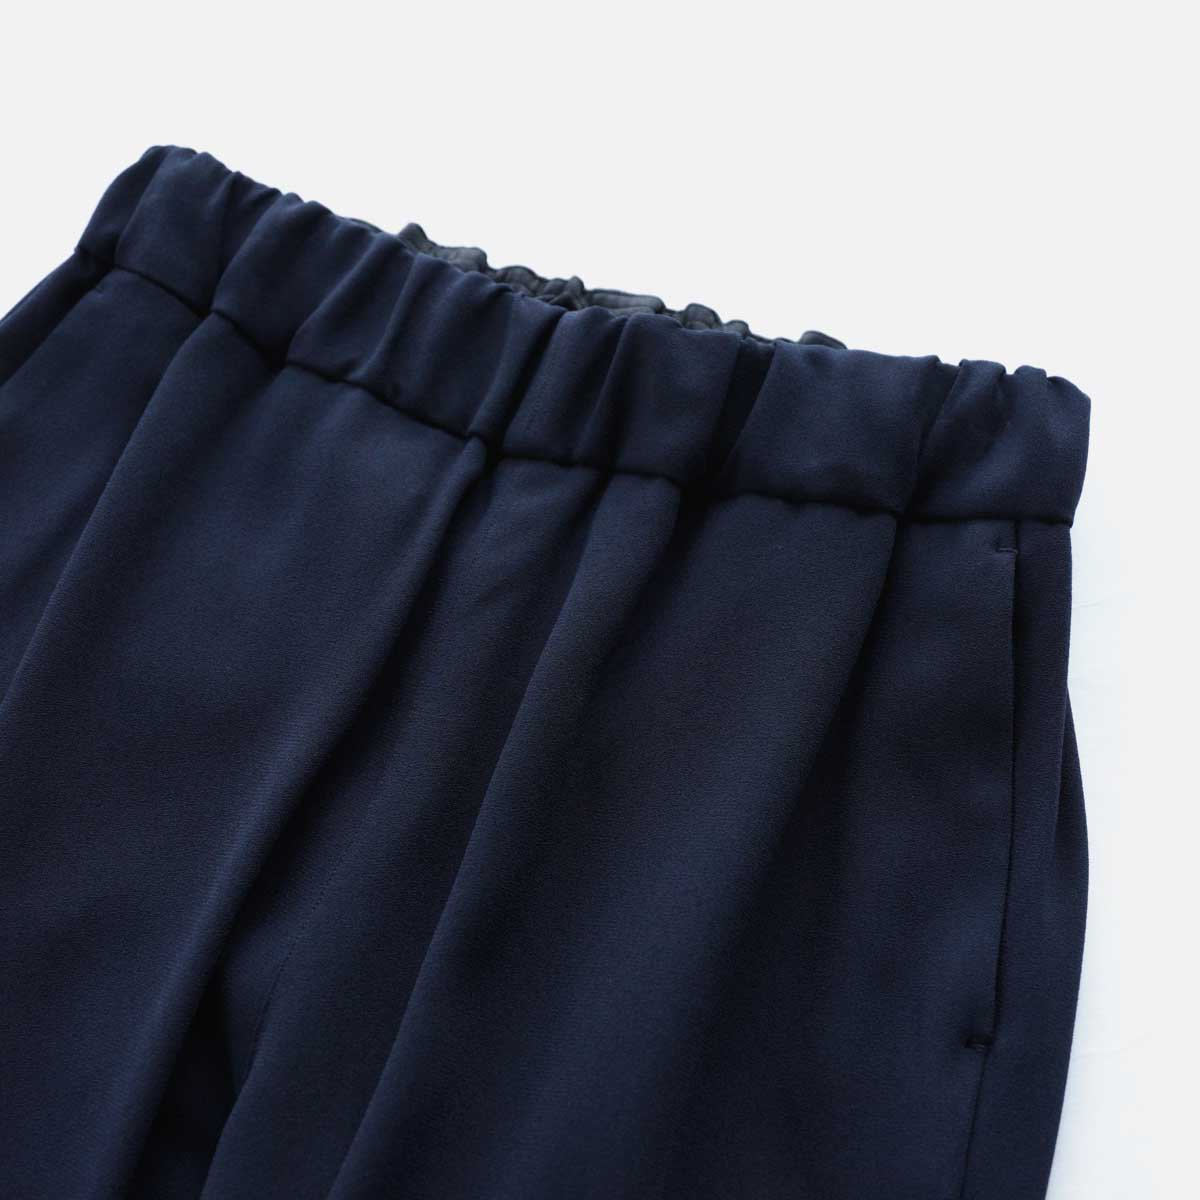 NO CONTROL AIR ACETATE & POLYESTER DOUBLE CLOTH TAPERED EASY PANTS (navy)3